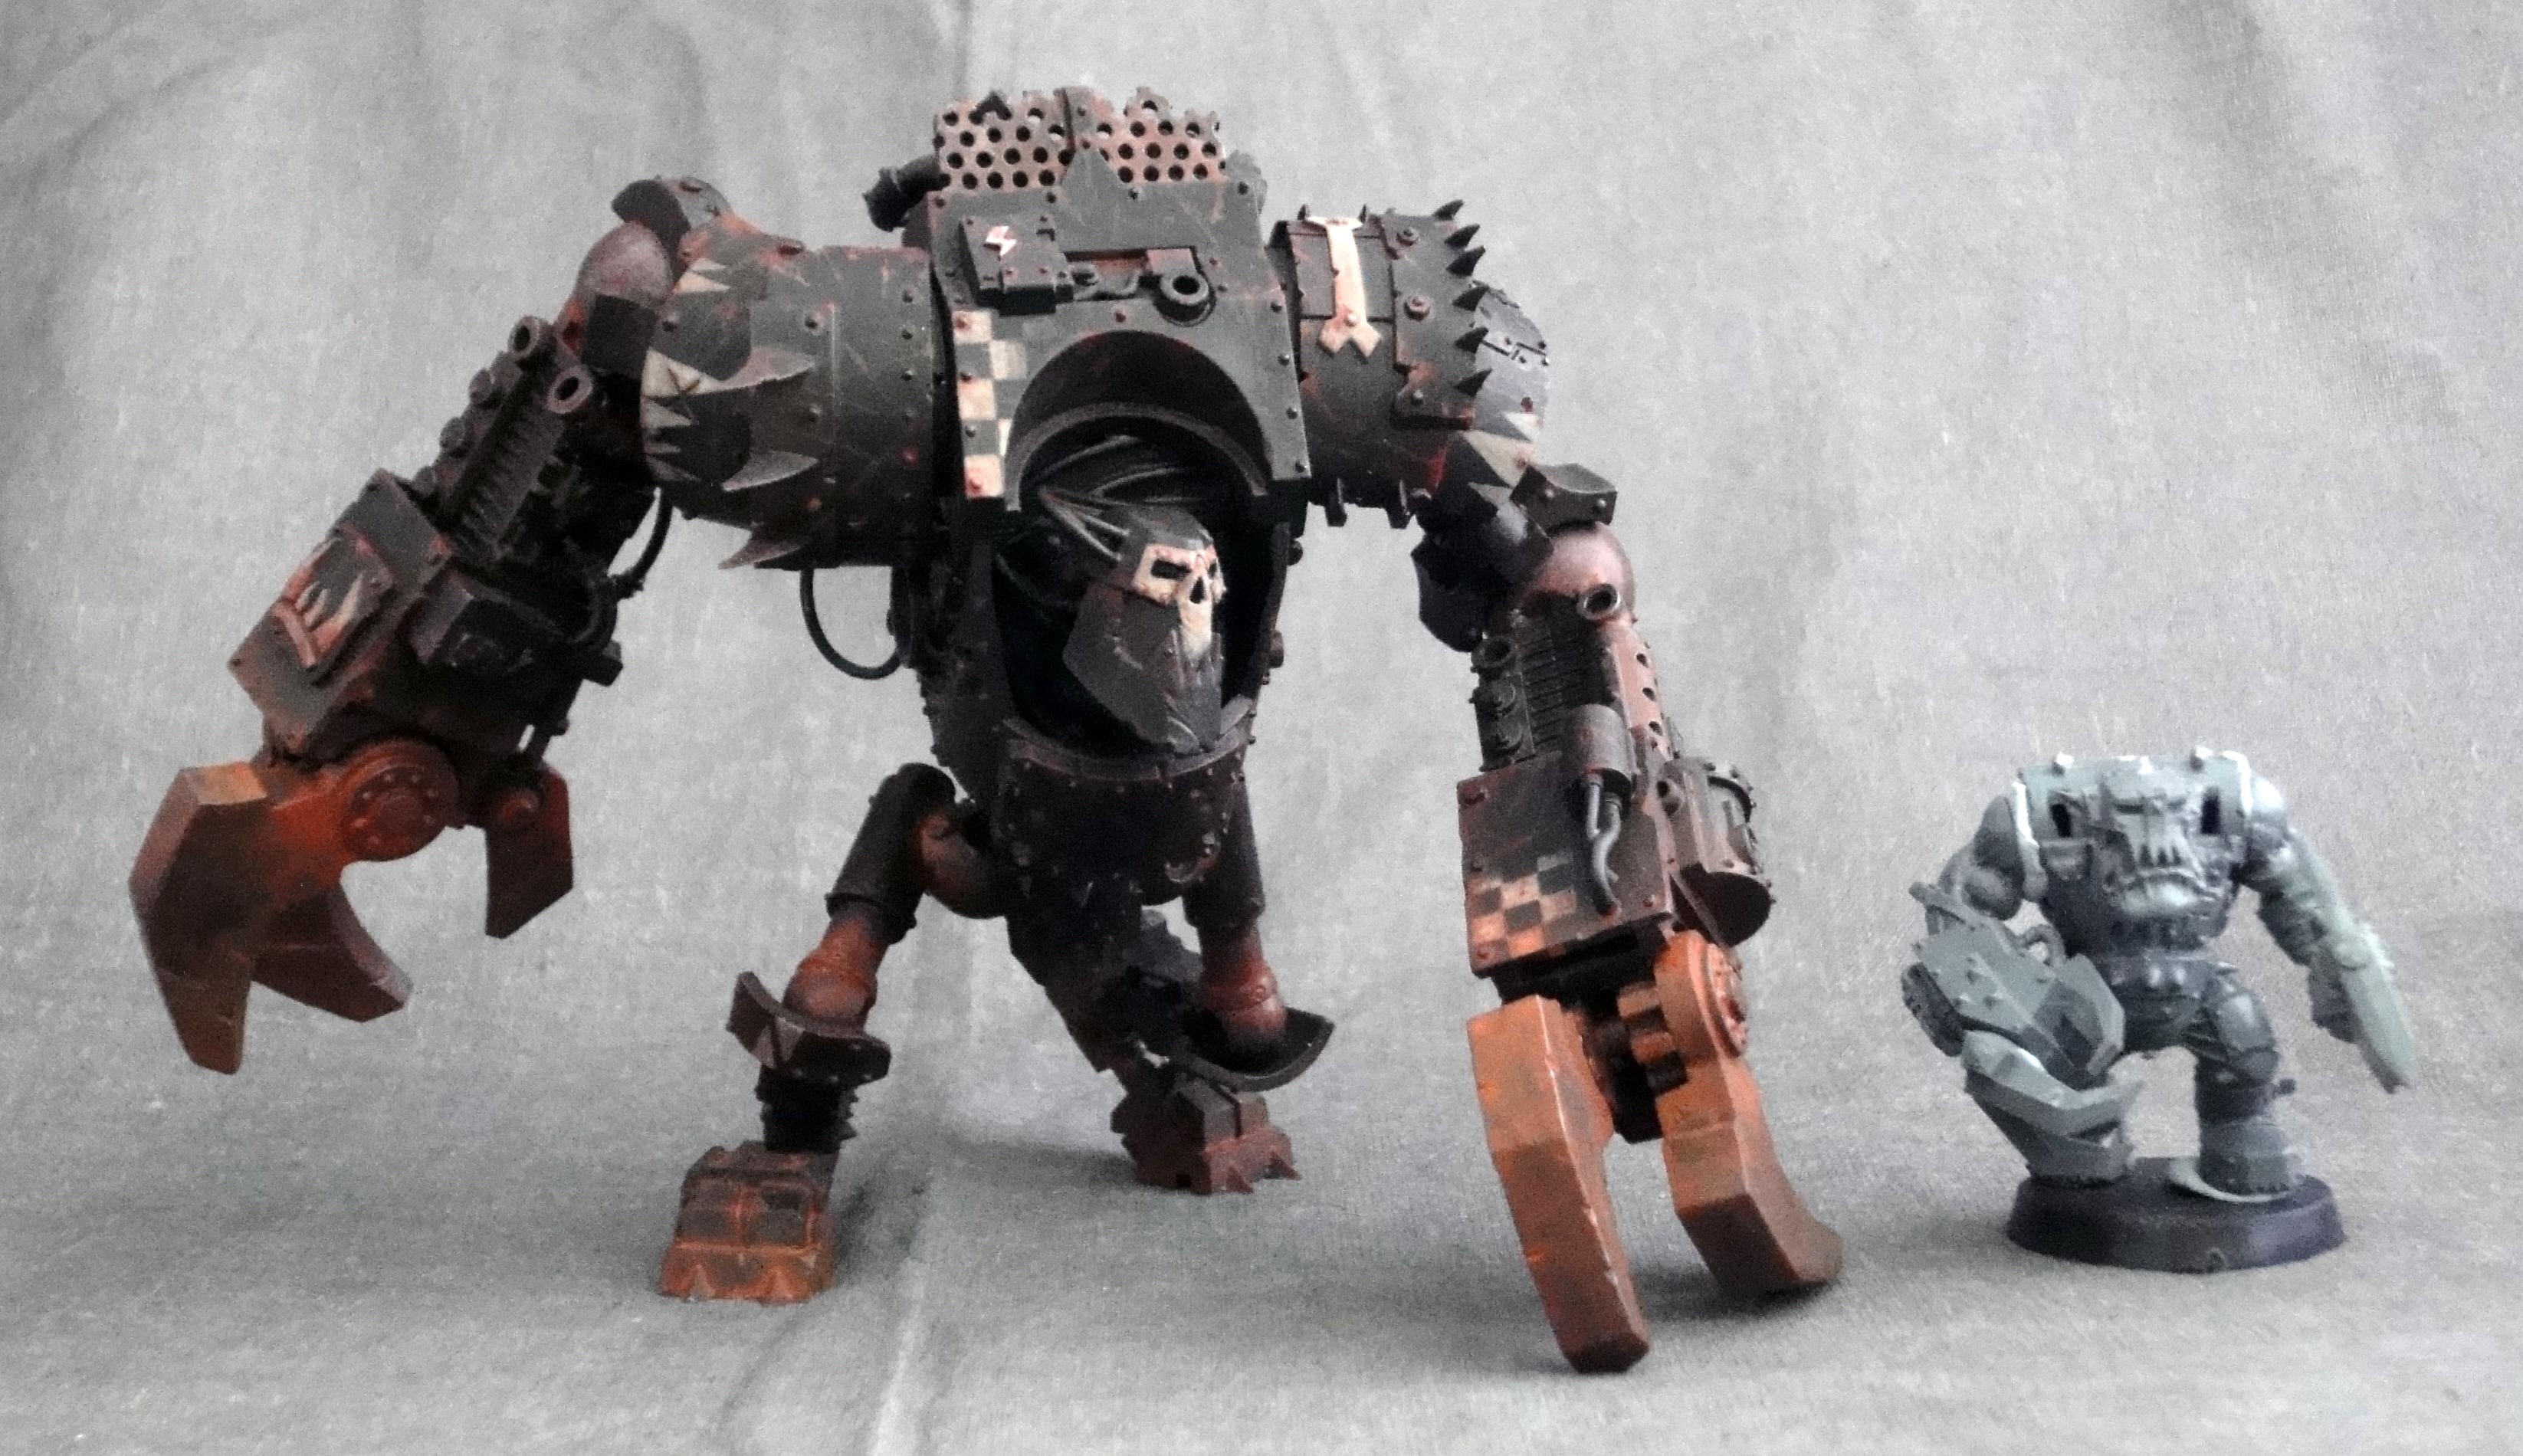 Bits, Conversion, Deff Dred, Iron, Orks